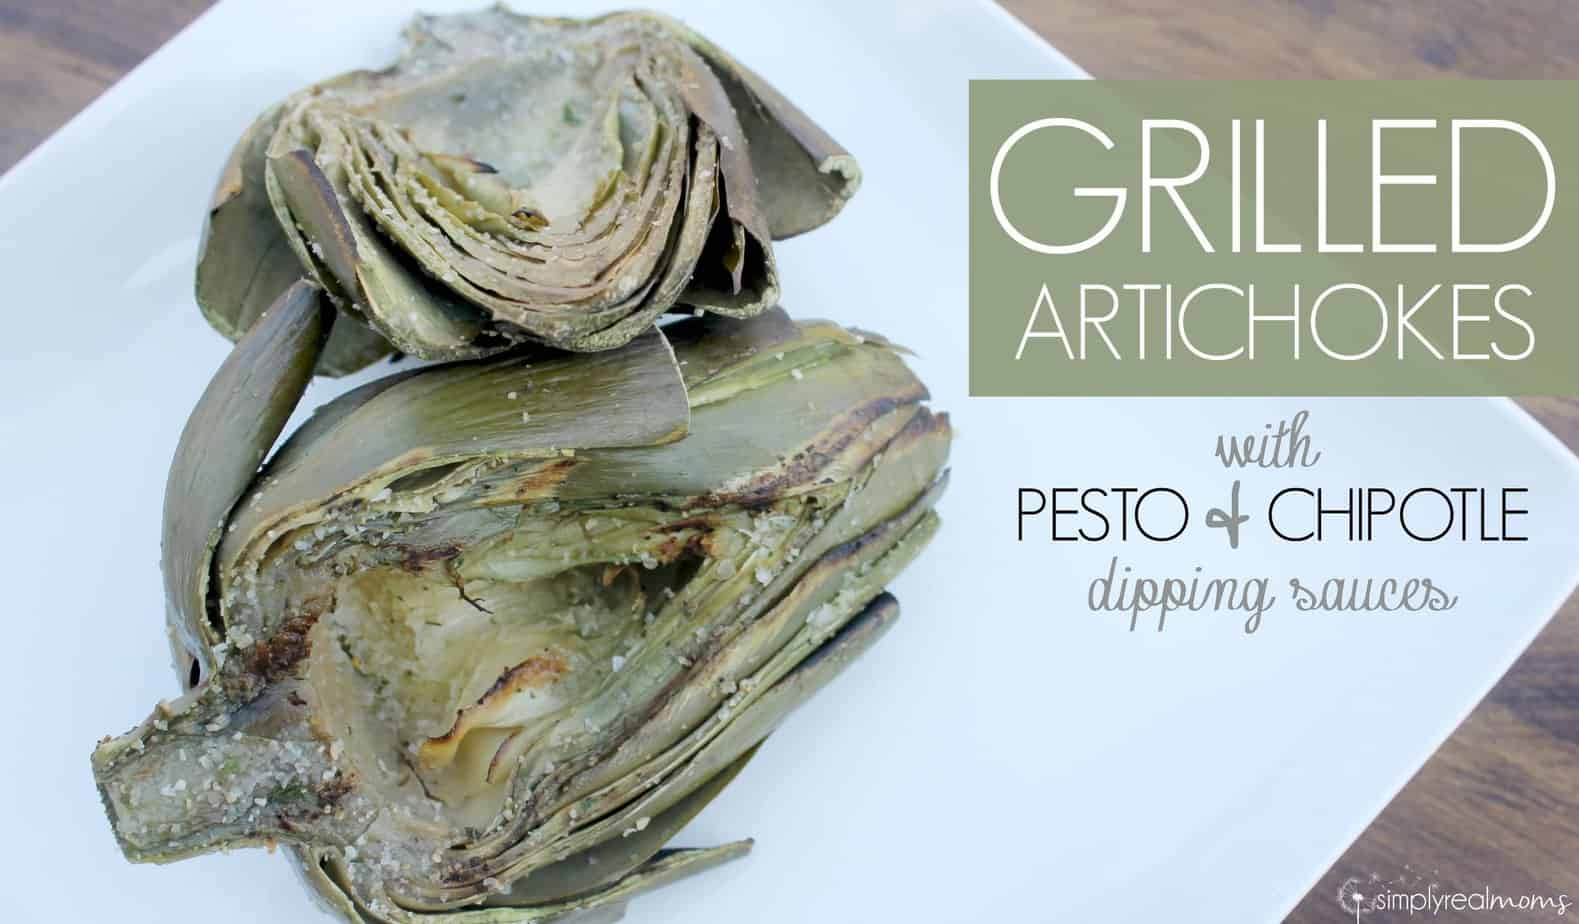 Grilled Artichokes with Pesto & Chipotle Dipping Sauces 3